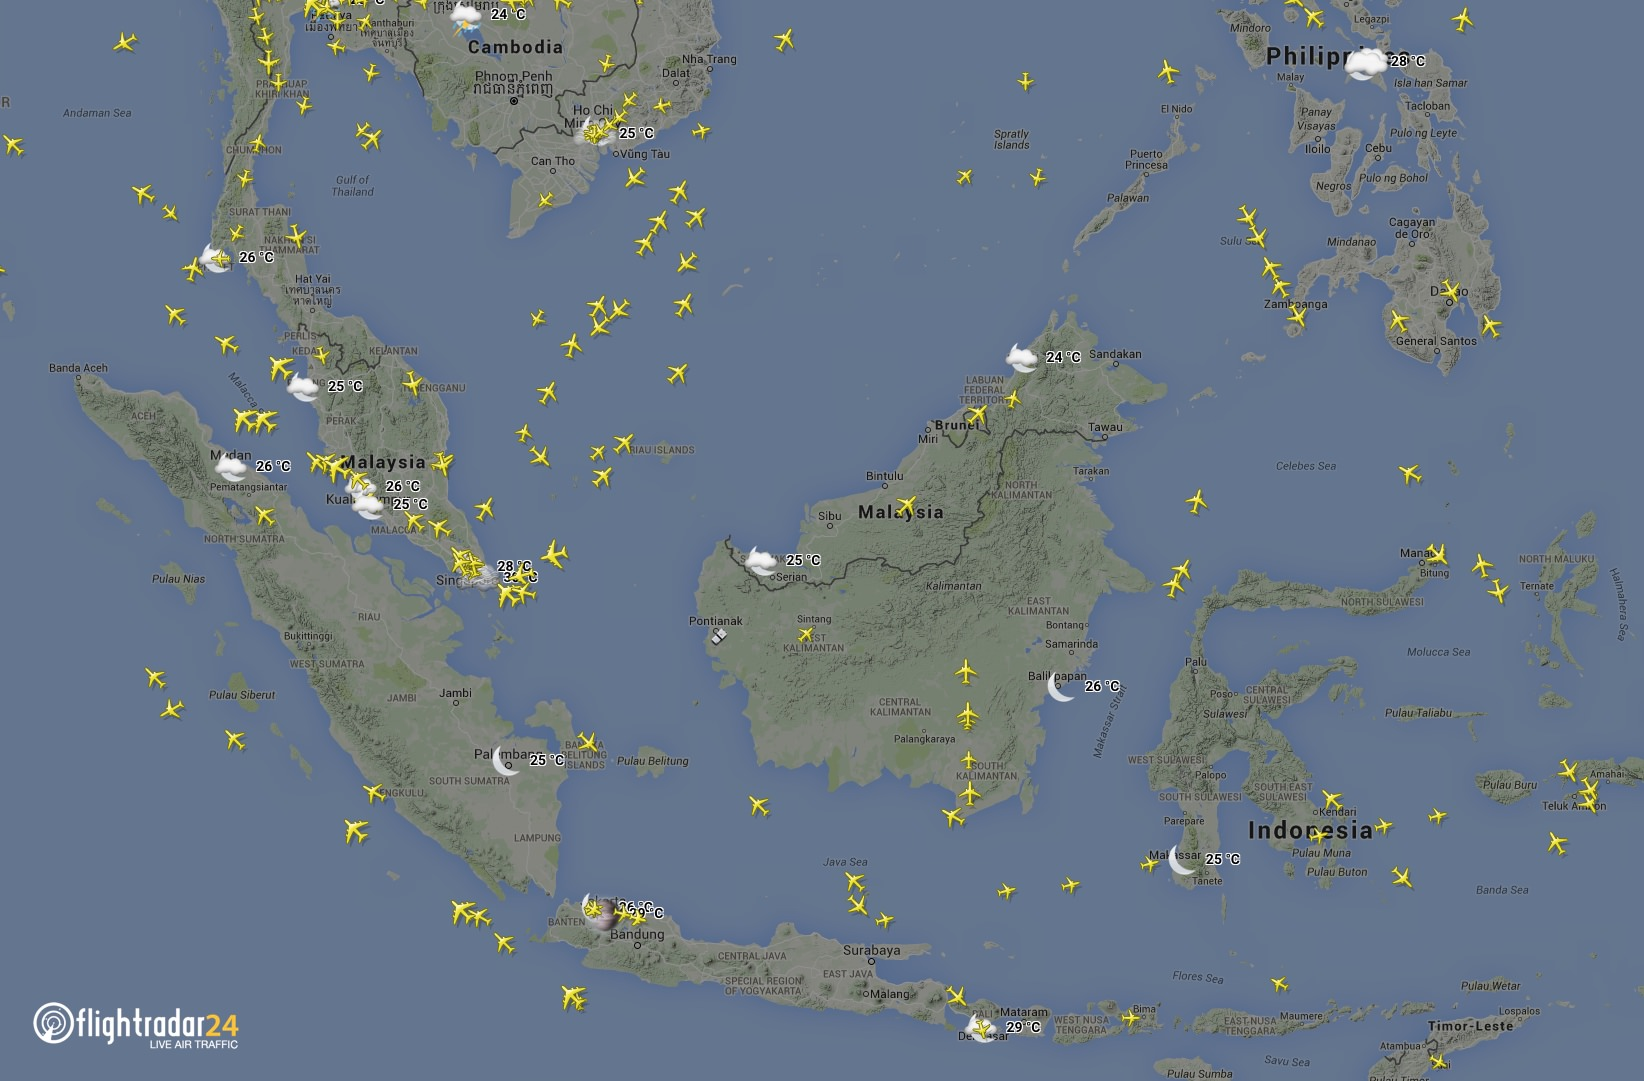 Basic weather is available for over 3000 airports worldwide